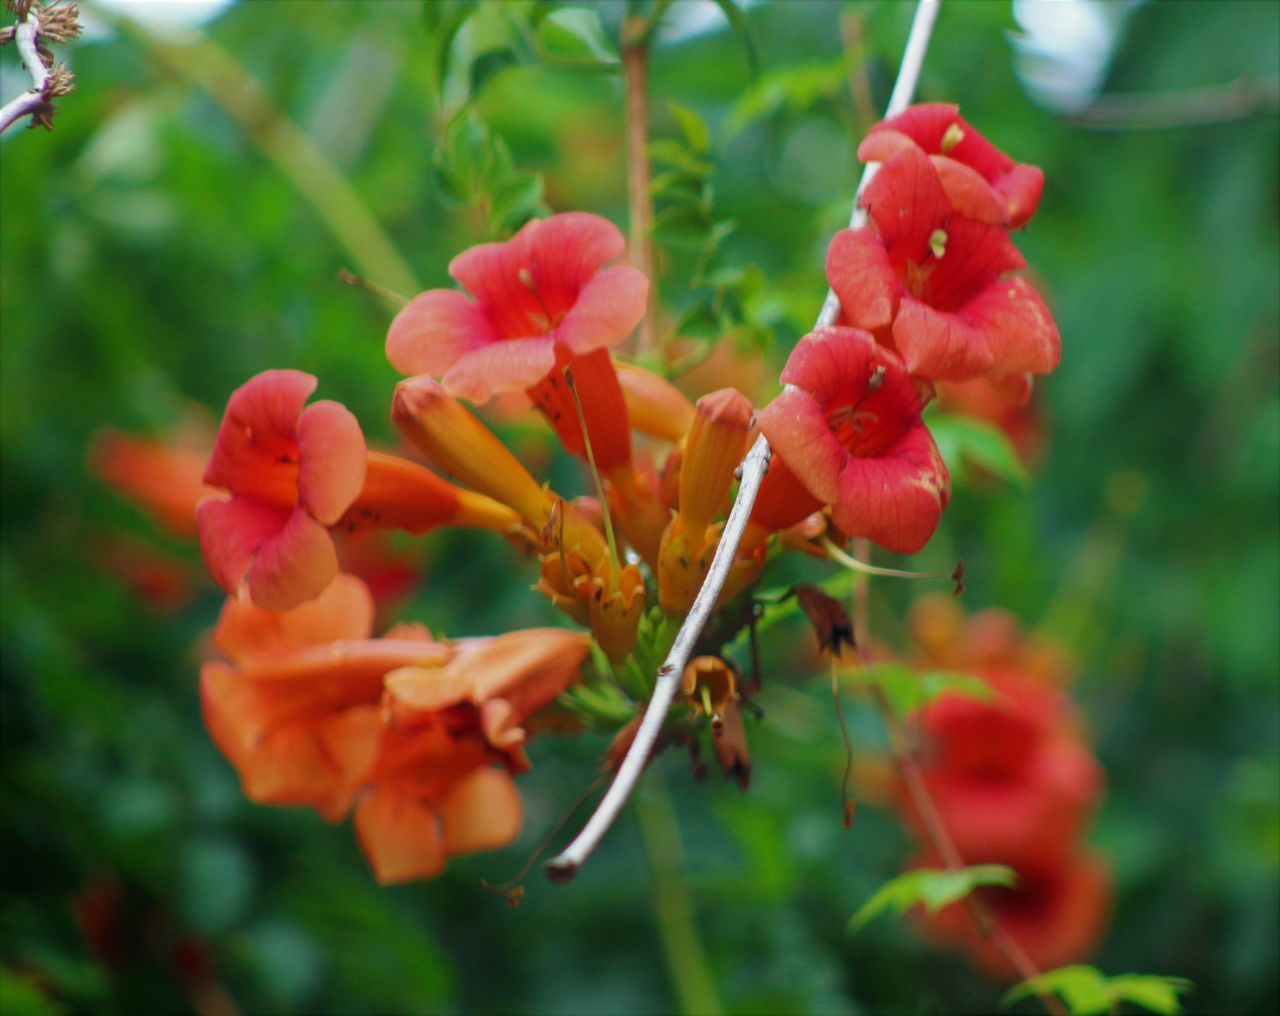 growth, flower, plant, nature, beauty in nature, red, petal, blooming, no people, fragility, outdoors, flower head, close-up, freshness, day